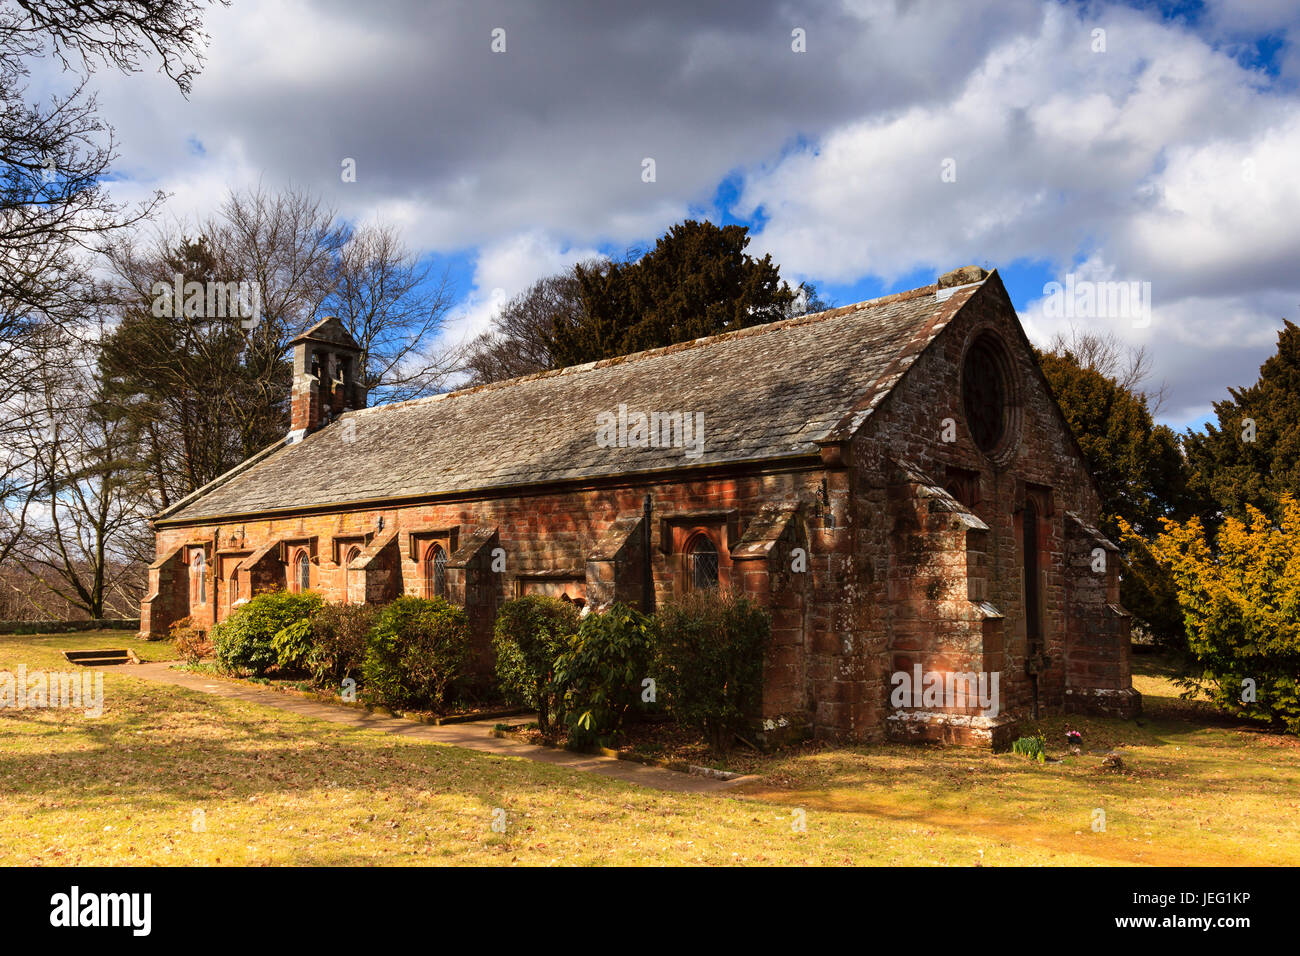 Saint Wilfrid's Chapel.  Saint Wilfrid's Chapel is the local parish church situated next to Brougham Hall - Stock Image